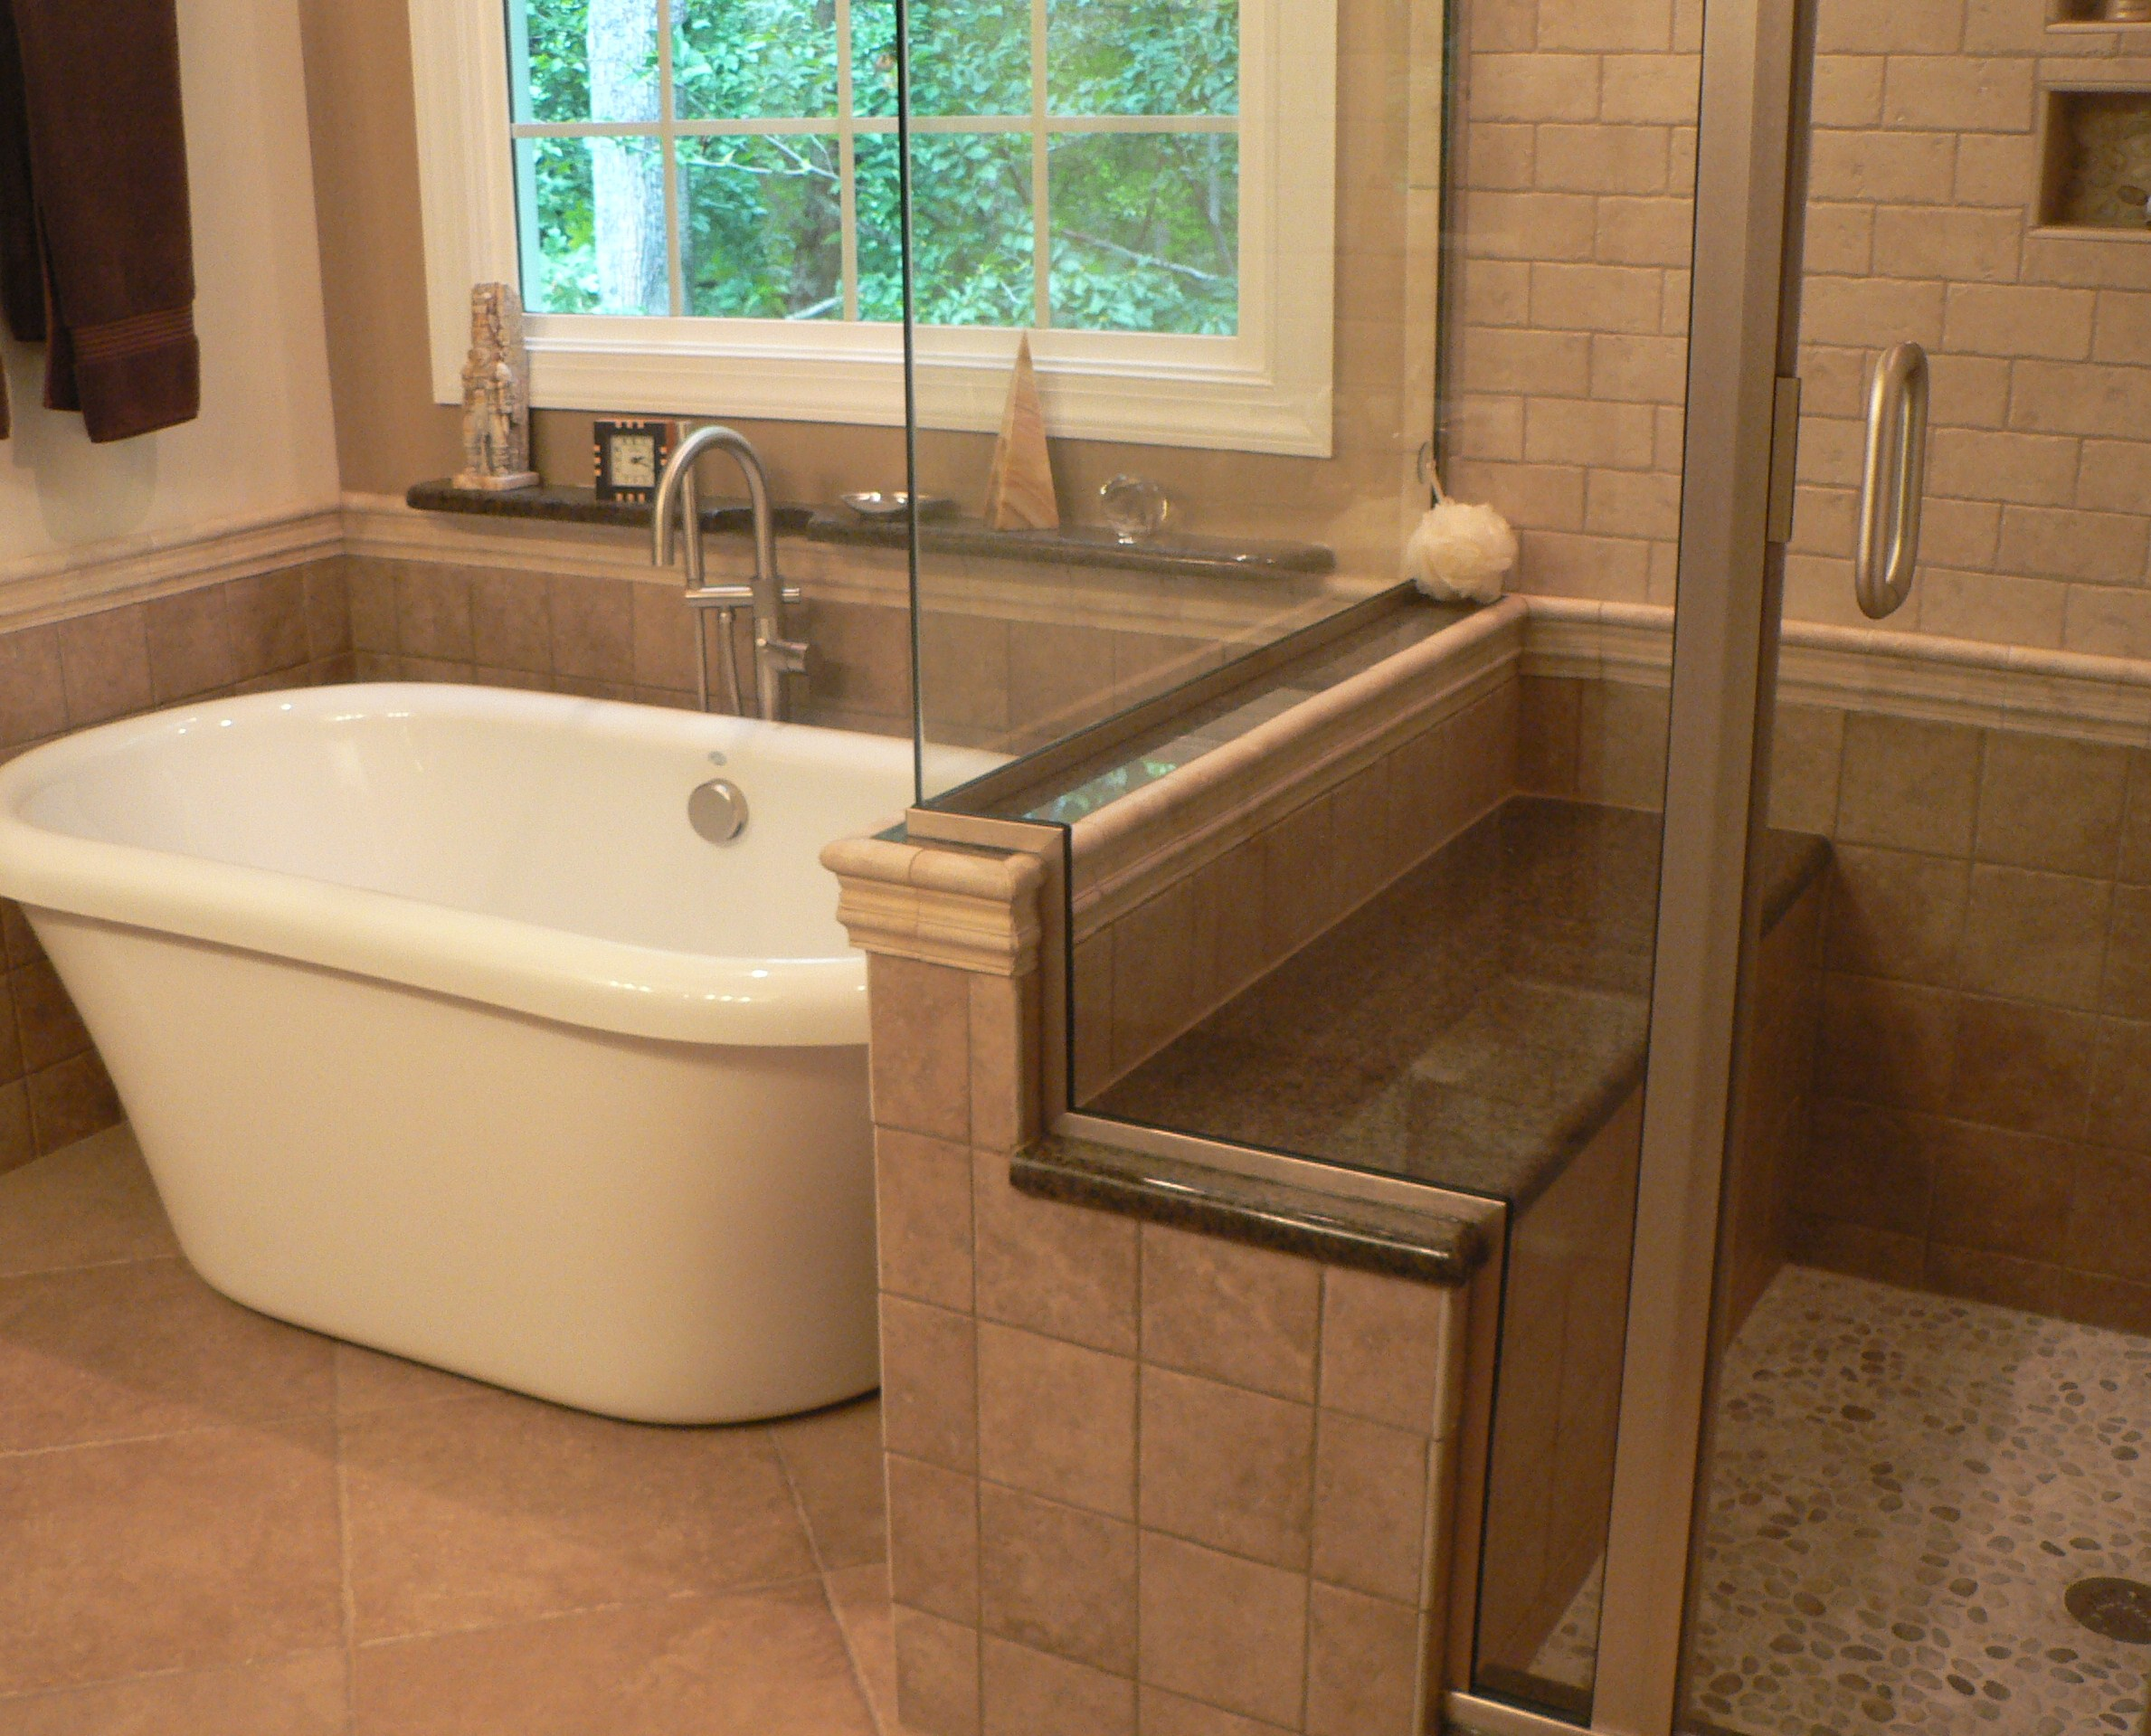 bathroom remodels bathroom remodels before and after bathroom remodel pictures before and after